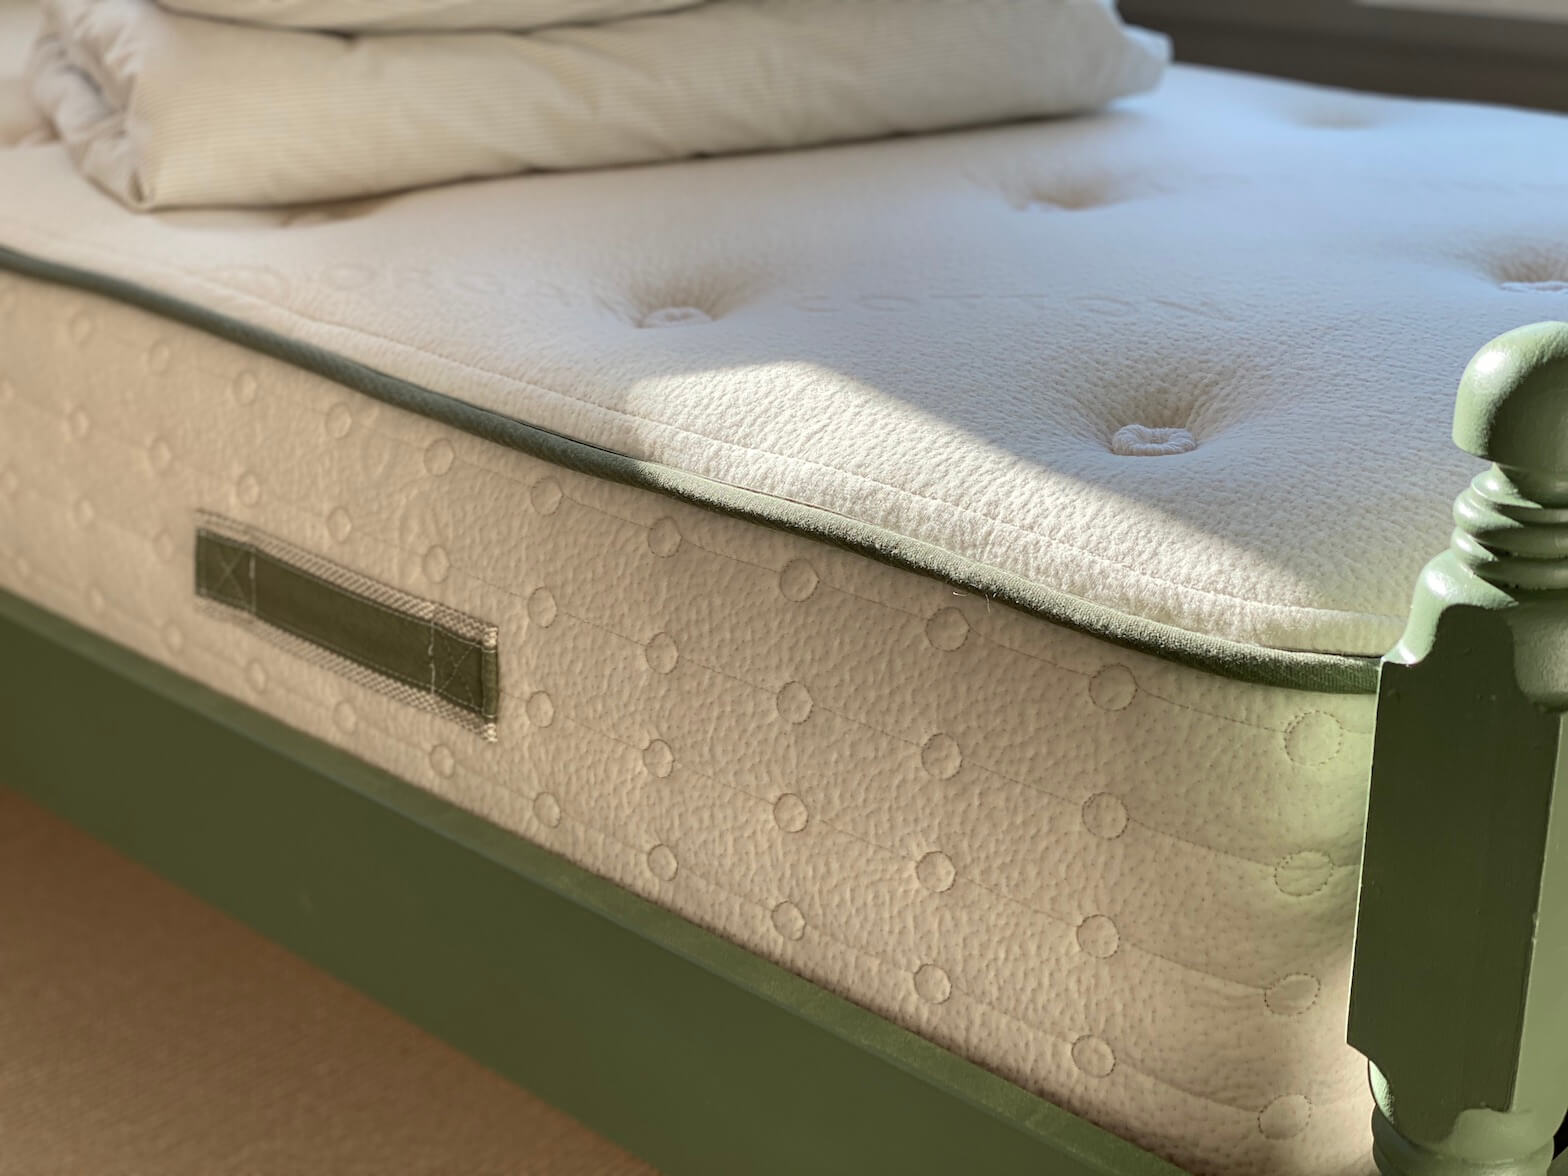 Avocado mattress review not sponsored non-toxic mattress organic mattress for toddlers